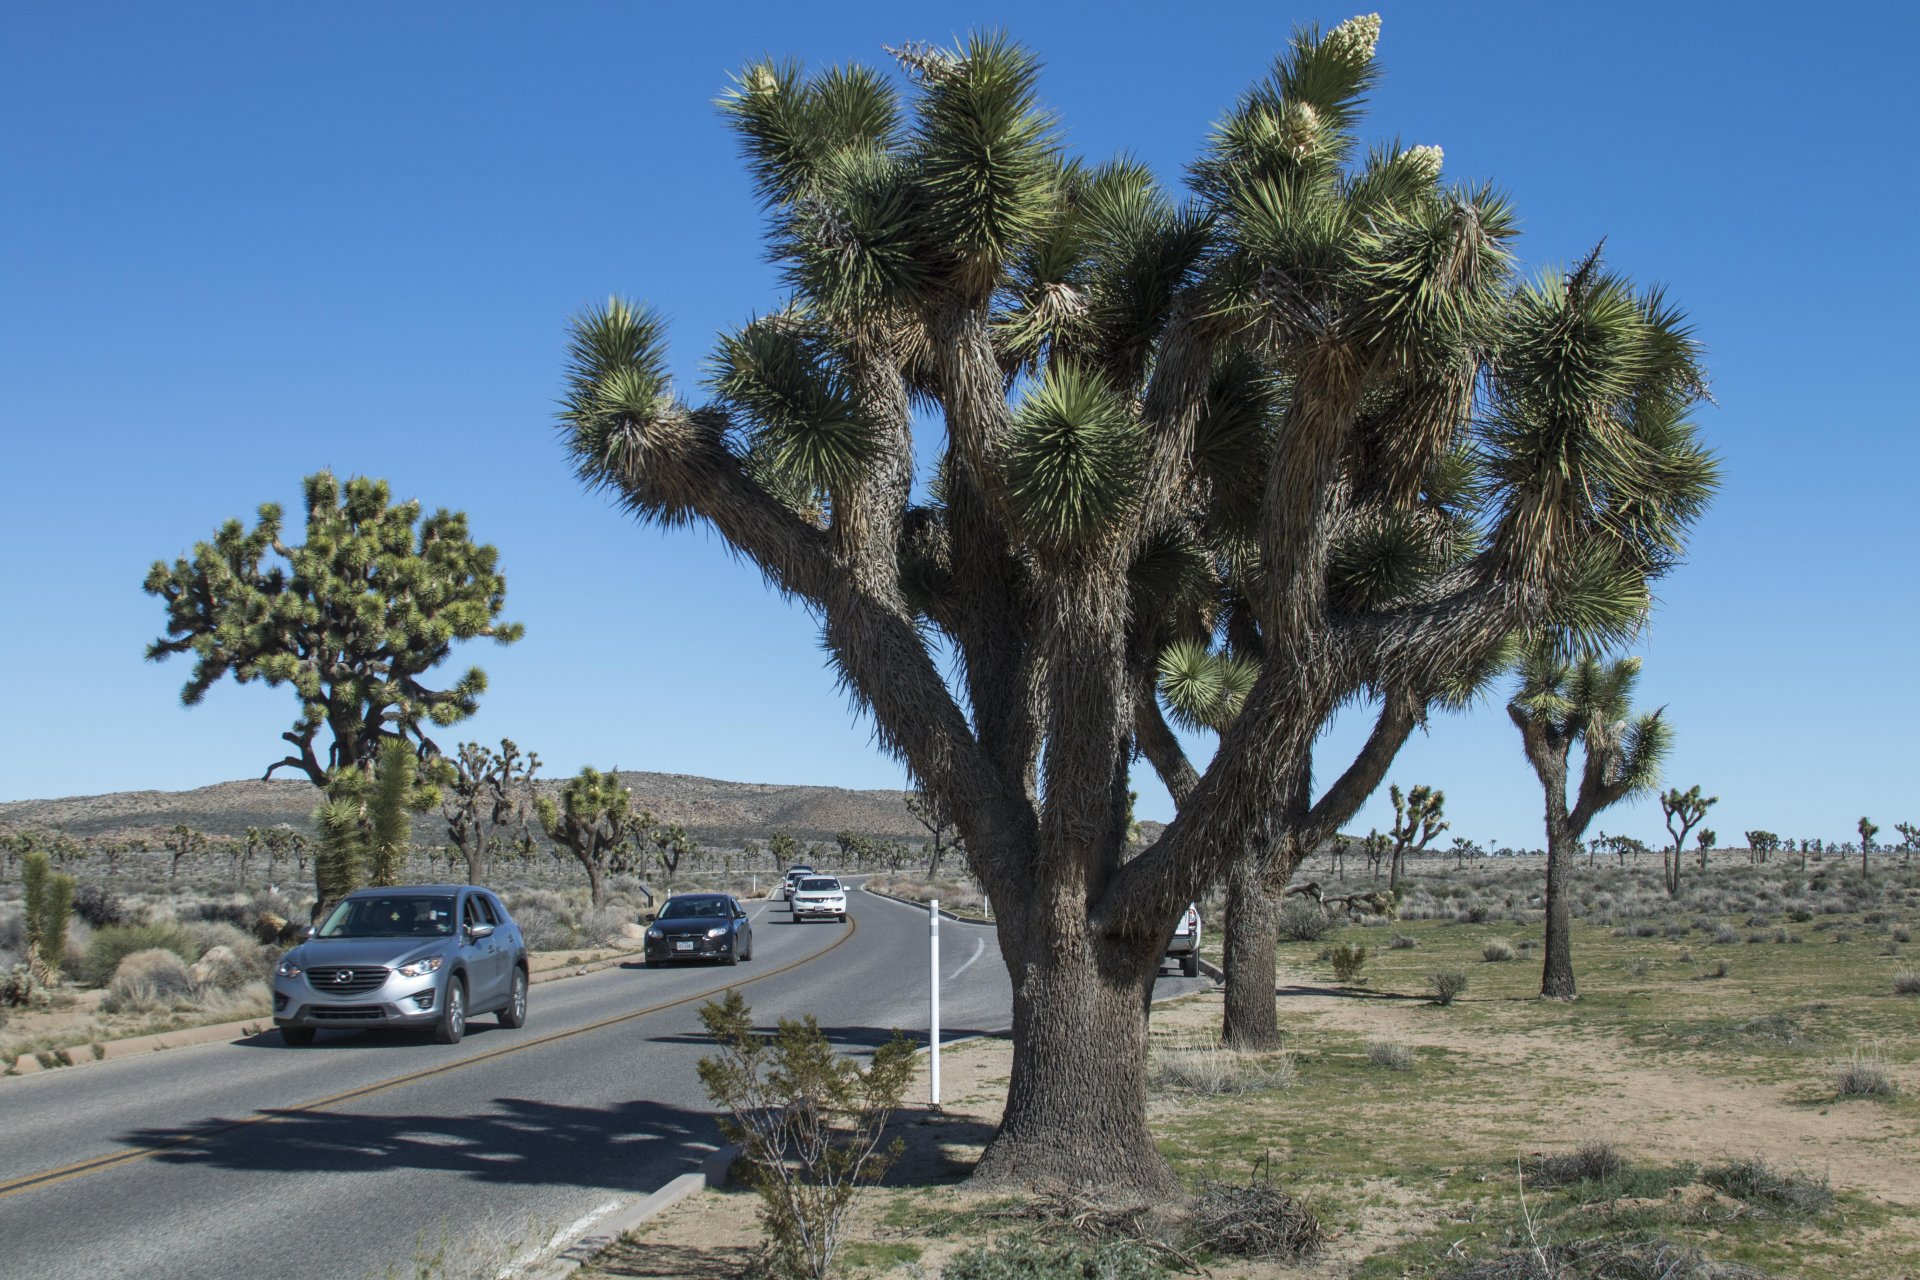 Cars driving past a Joshua tree (Yucca brevifolia) on Park Boulevard in Joshua Tree National Park. Photo by Tyler Boydstun